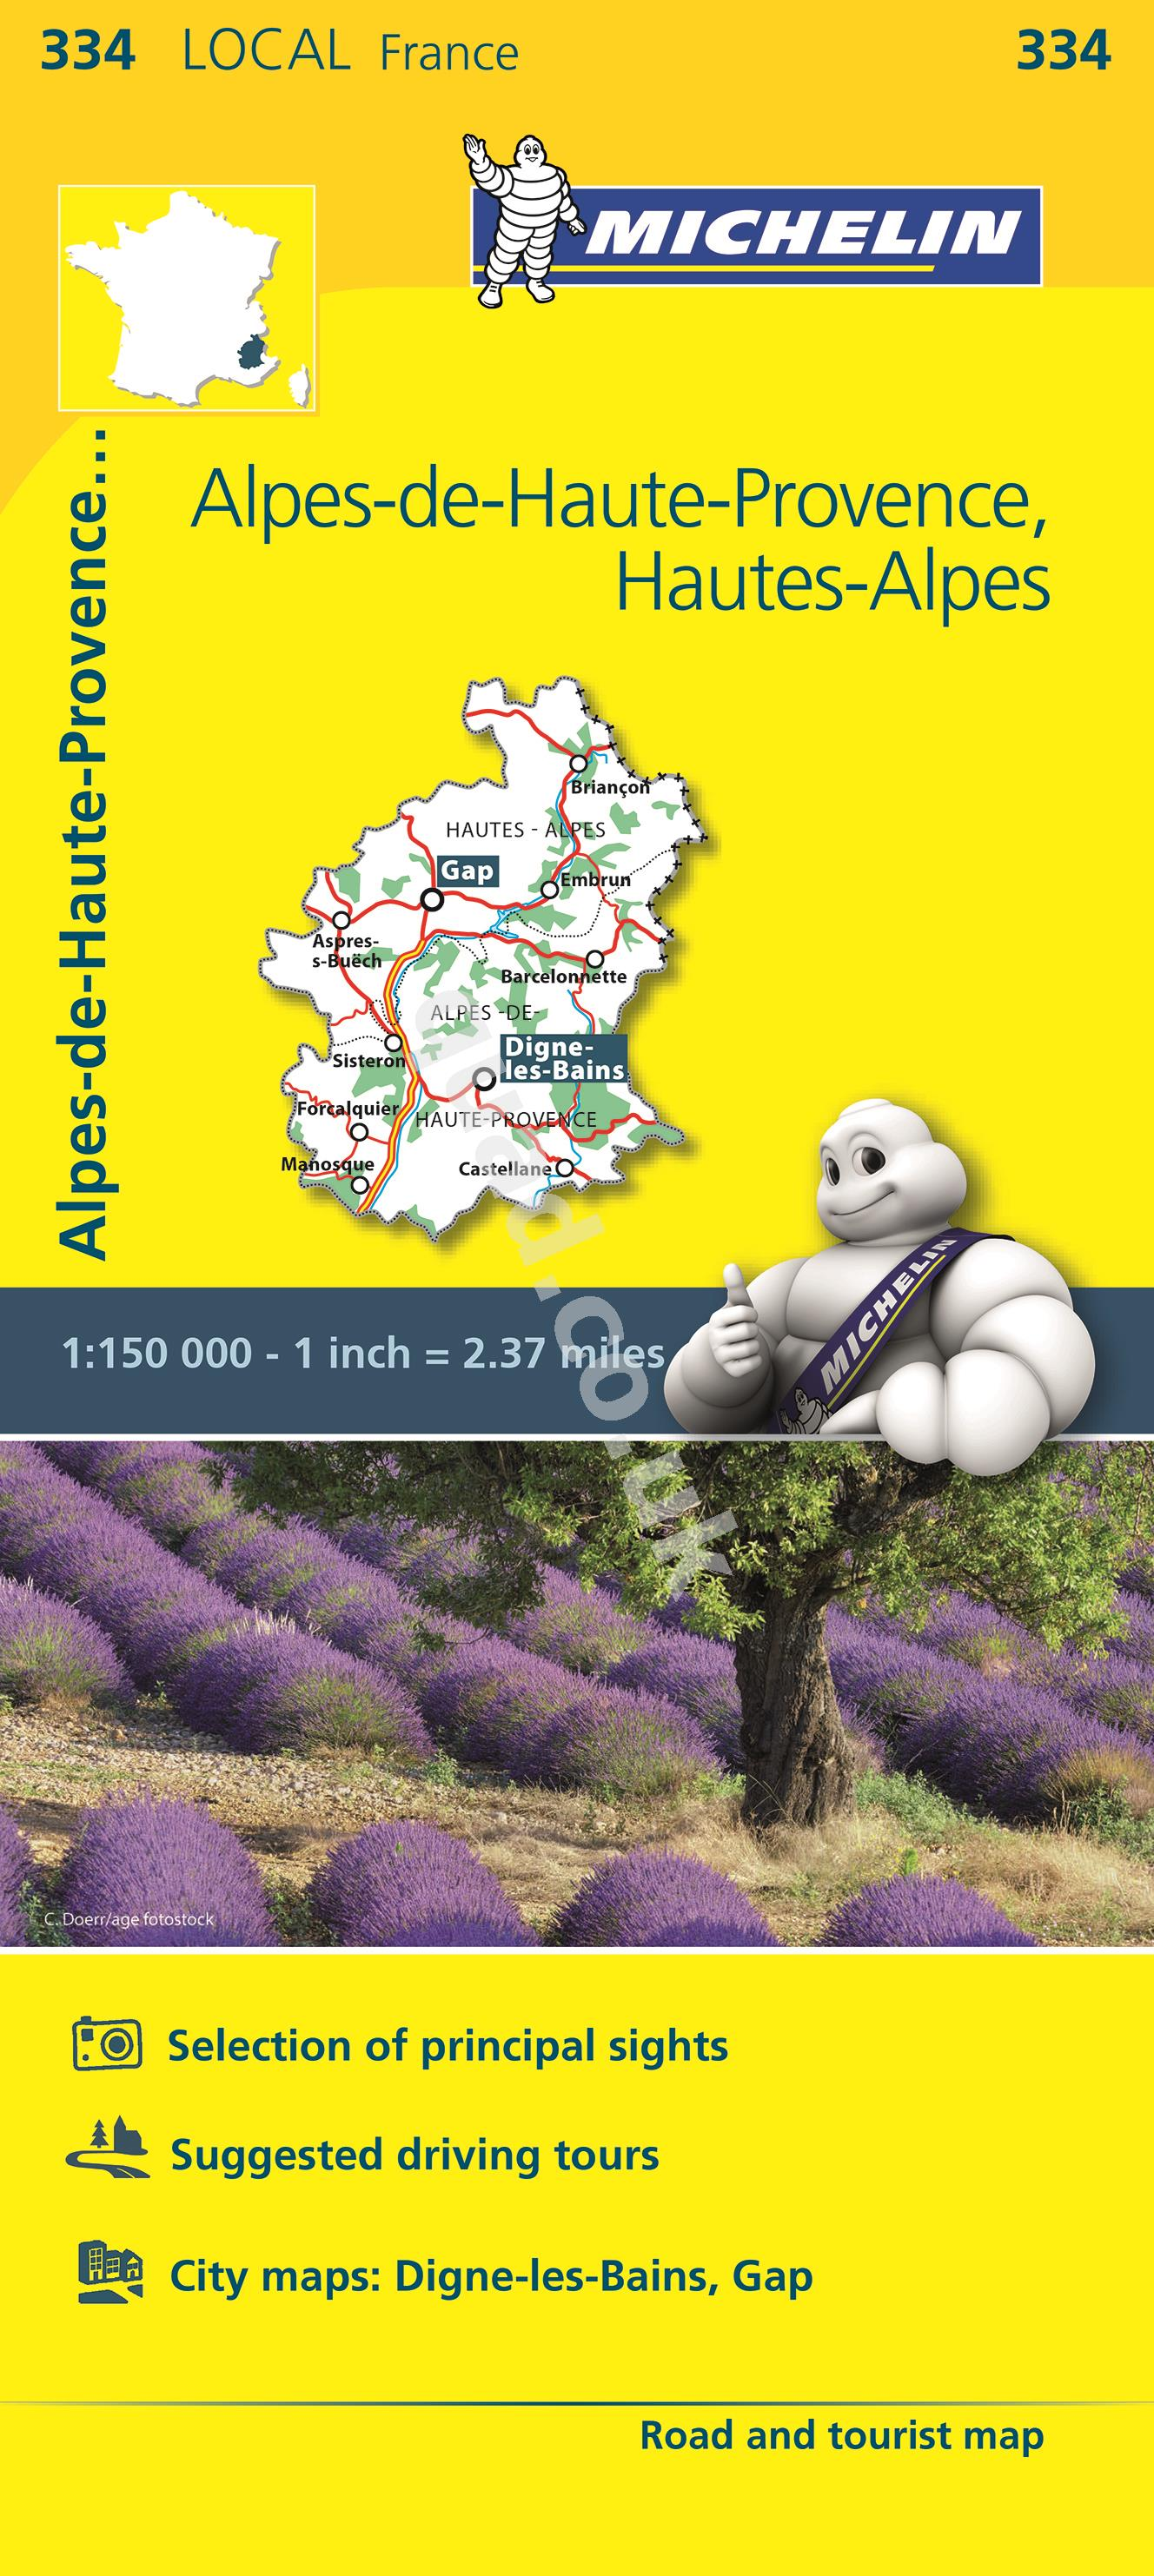 Michelin  Local Map - Alpes-Hautes-Provence, Alpes (France)